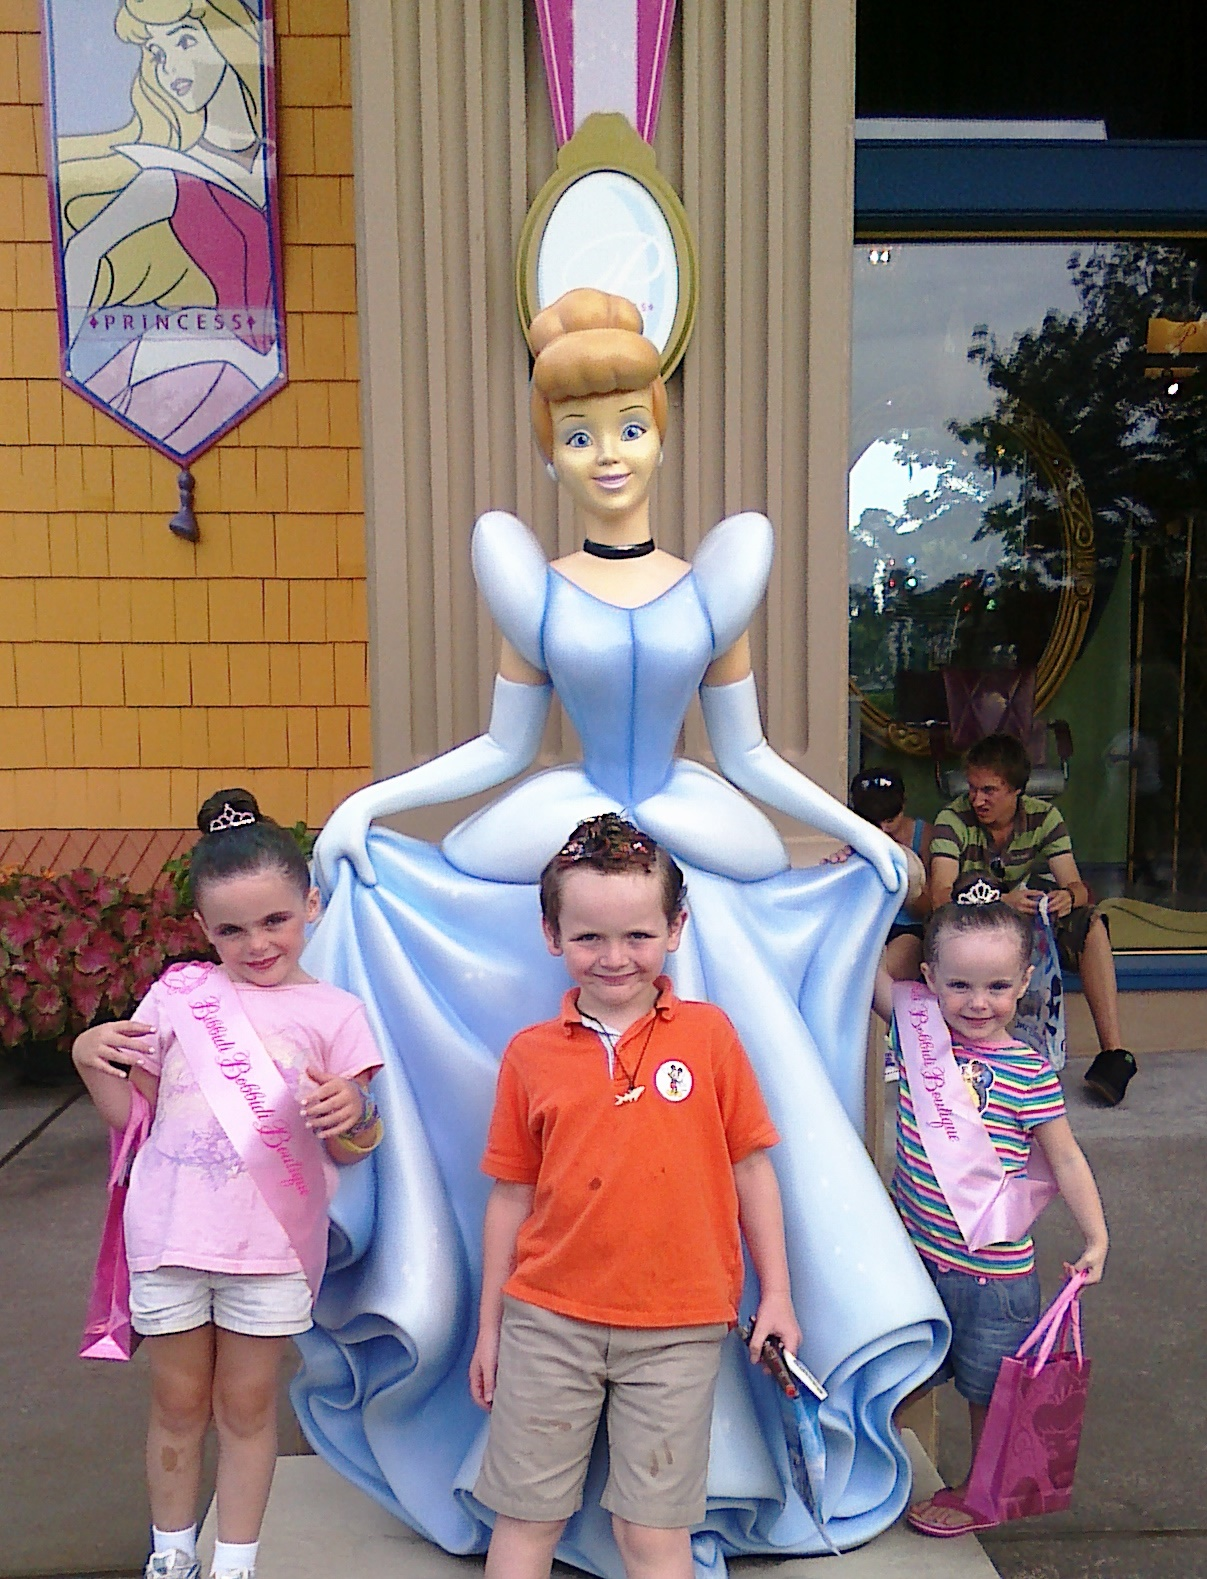 Two Happy Princesses and One Cool Dude